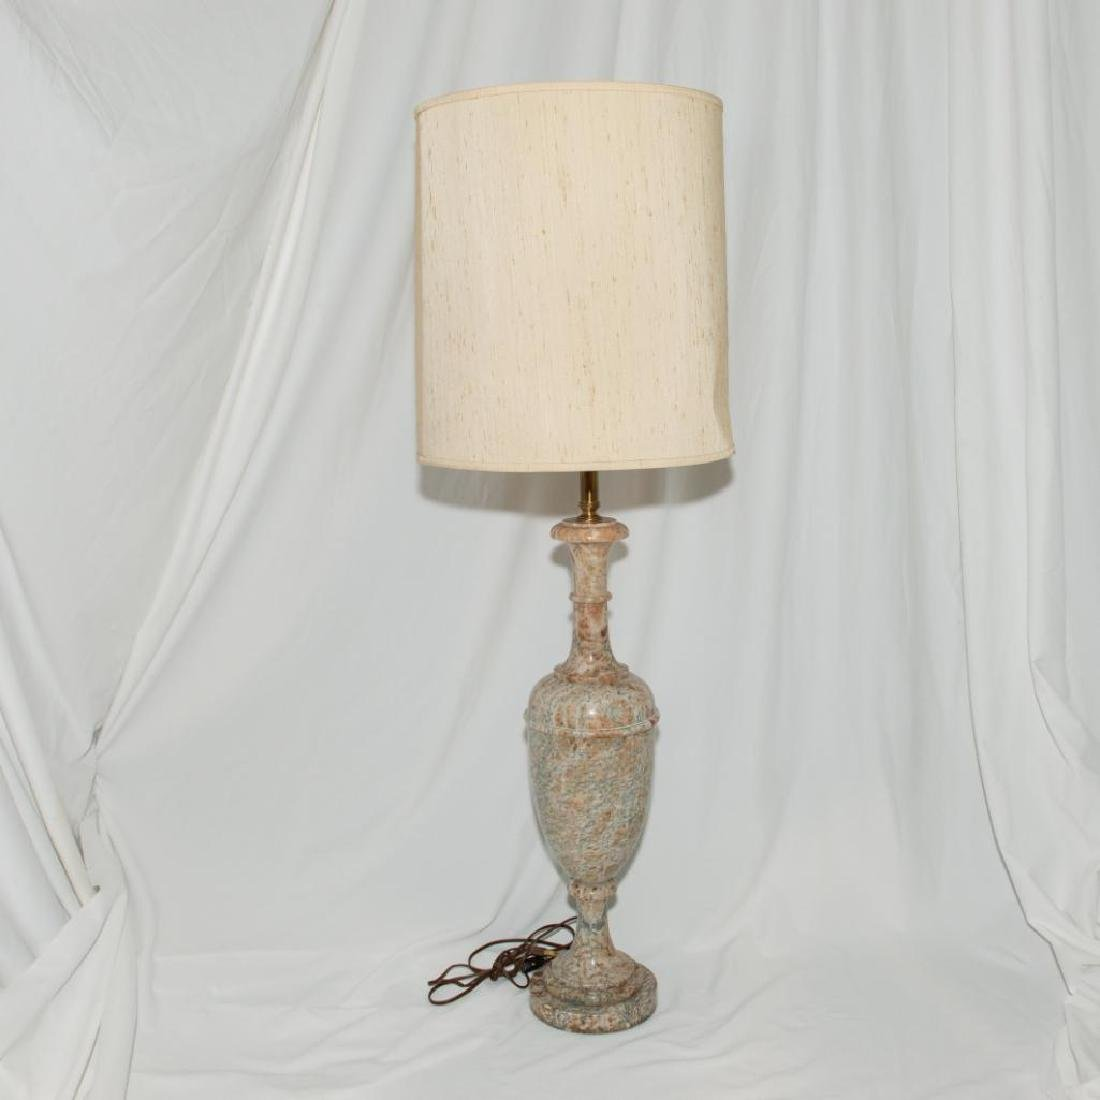 URN-FORM ITALIAN HAND CARVED ALABASTER ELECTRIC LAMP